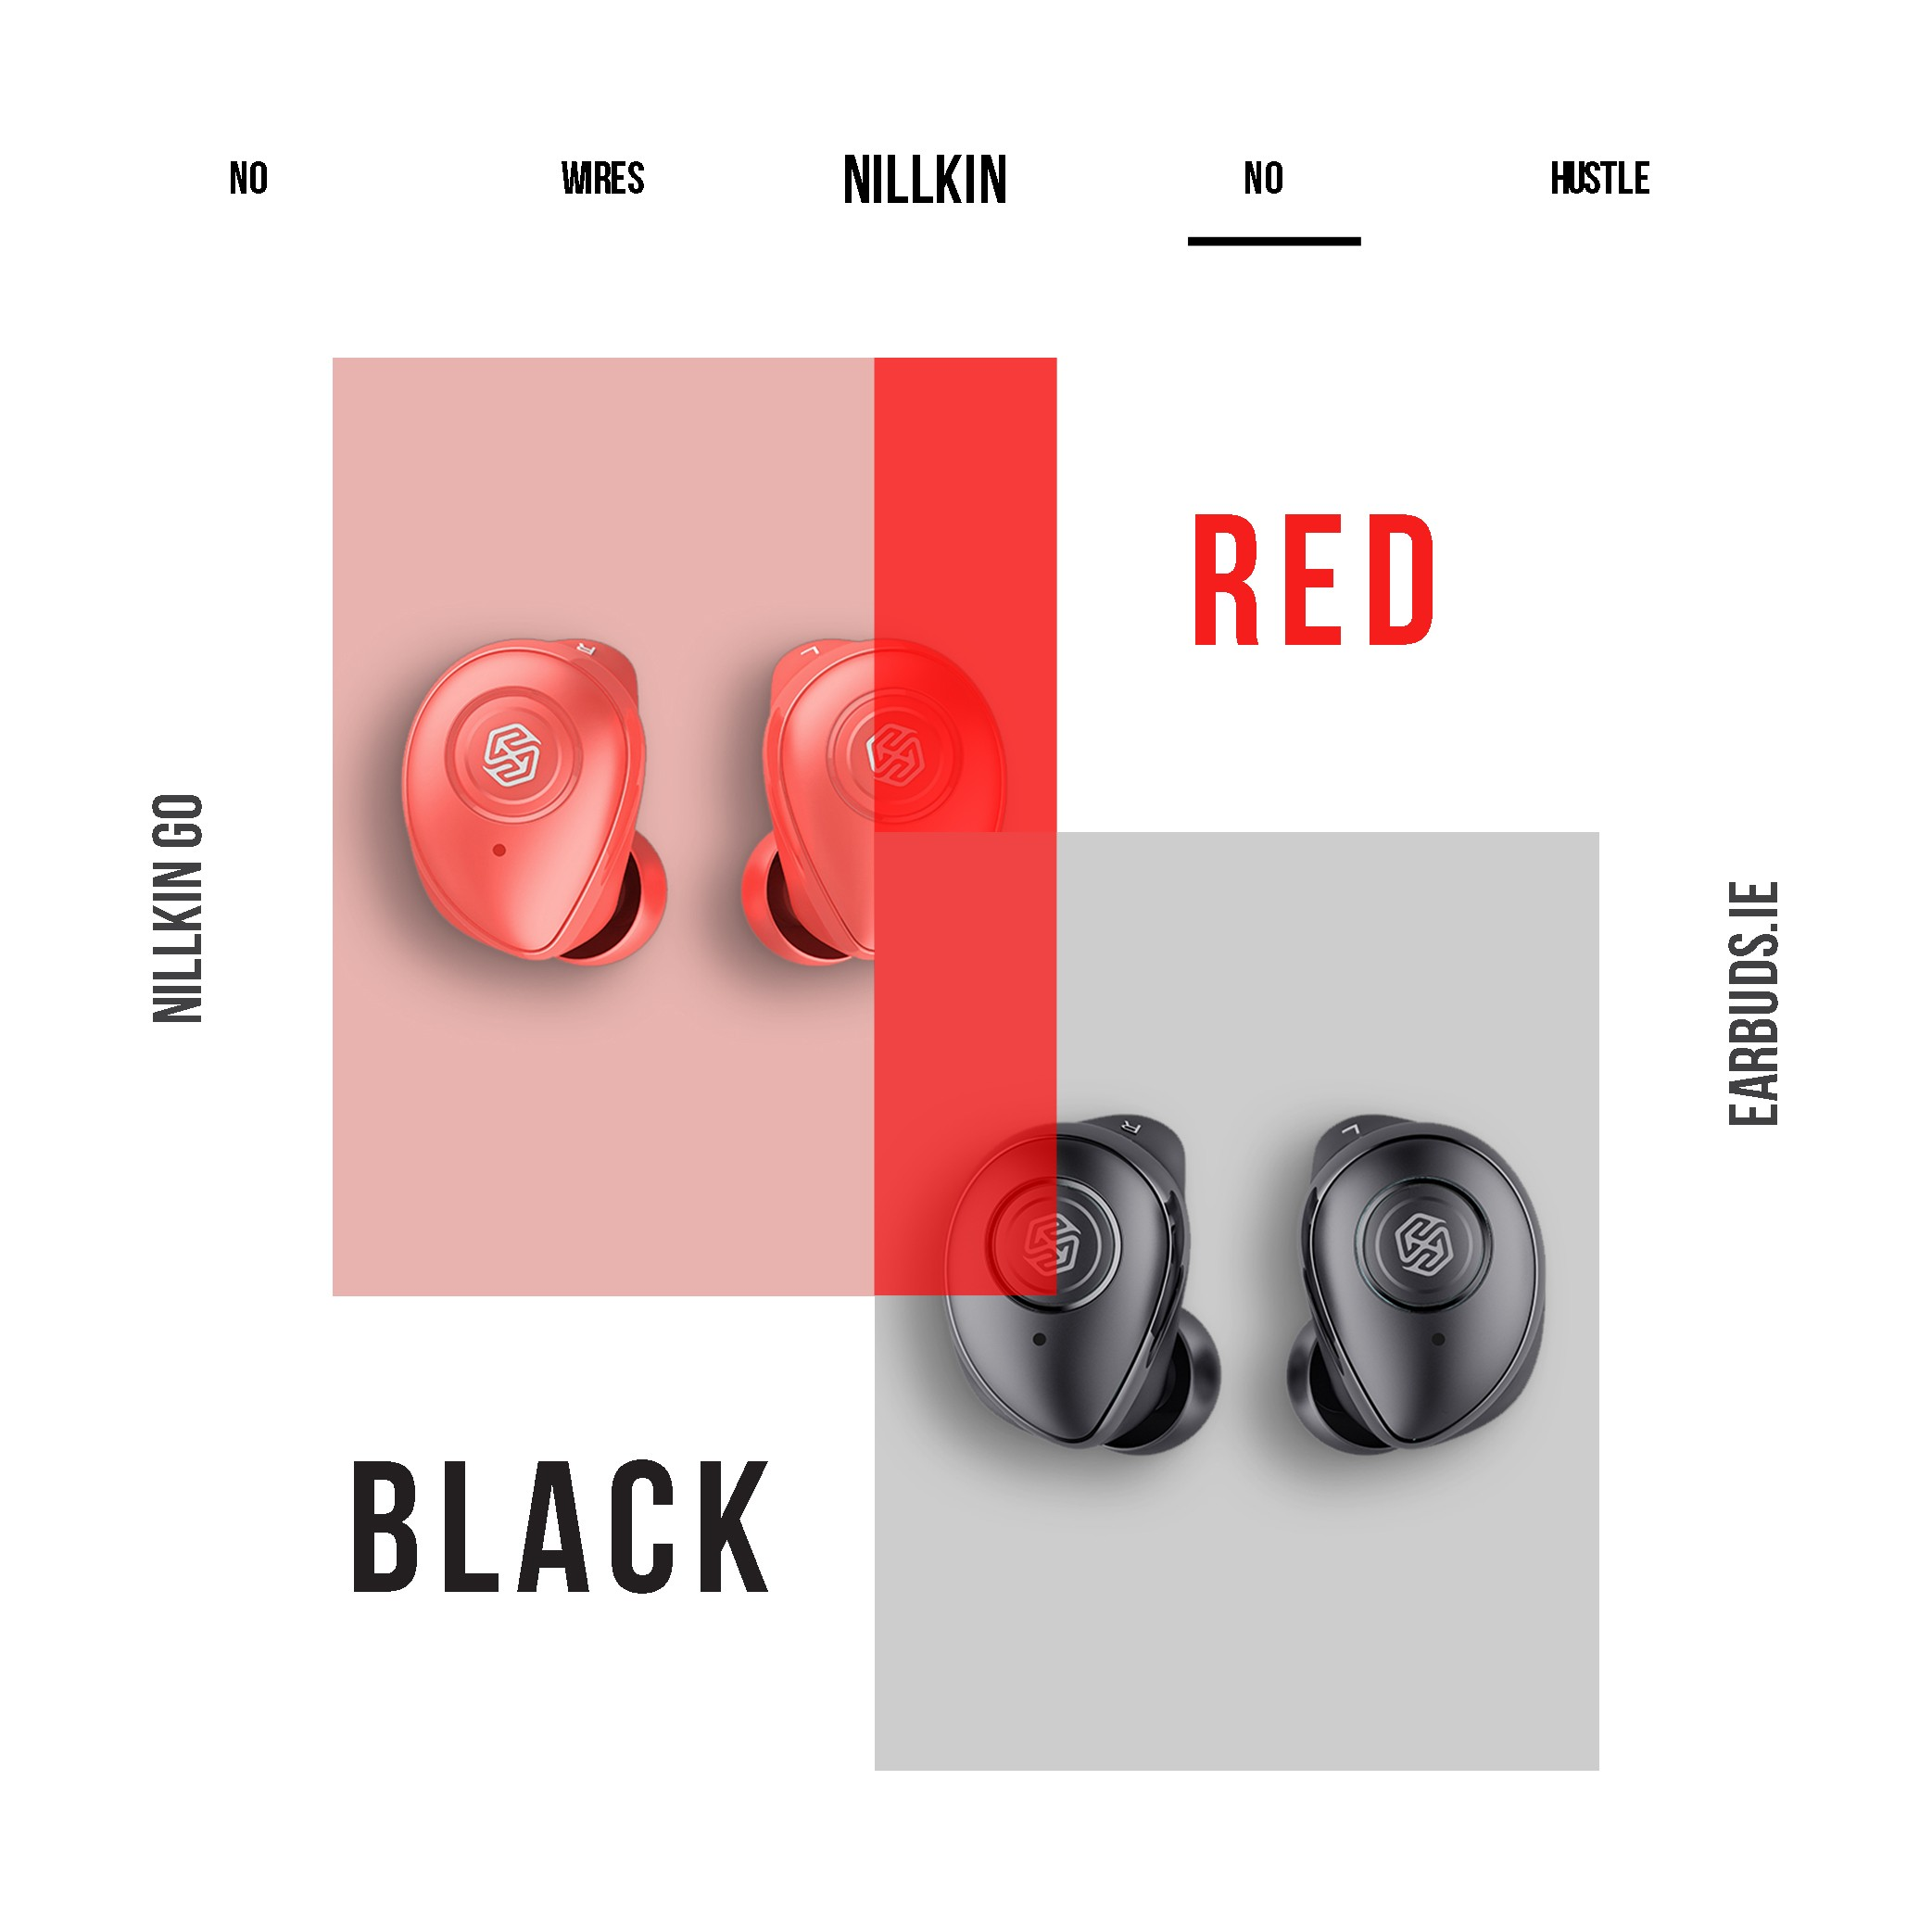 nillkin go wireless earbuds